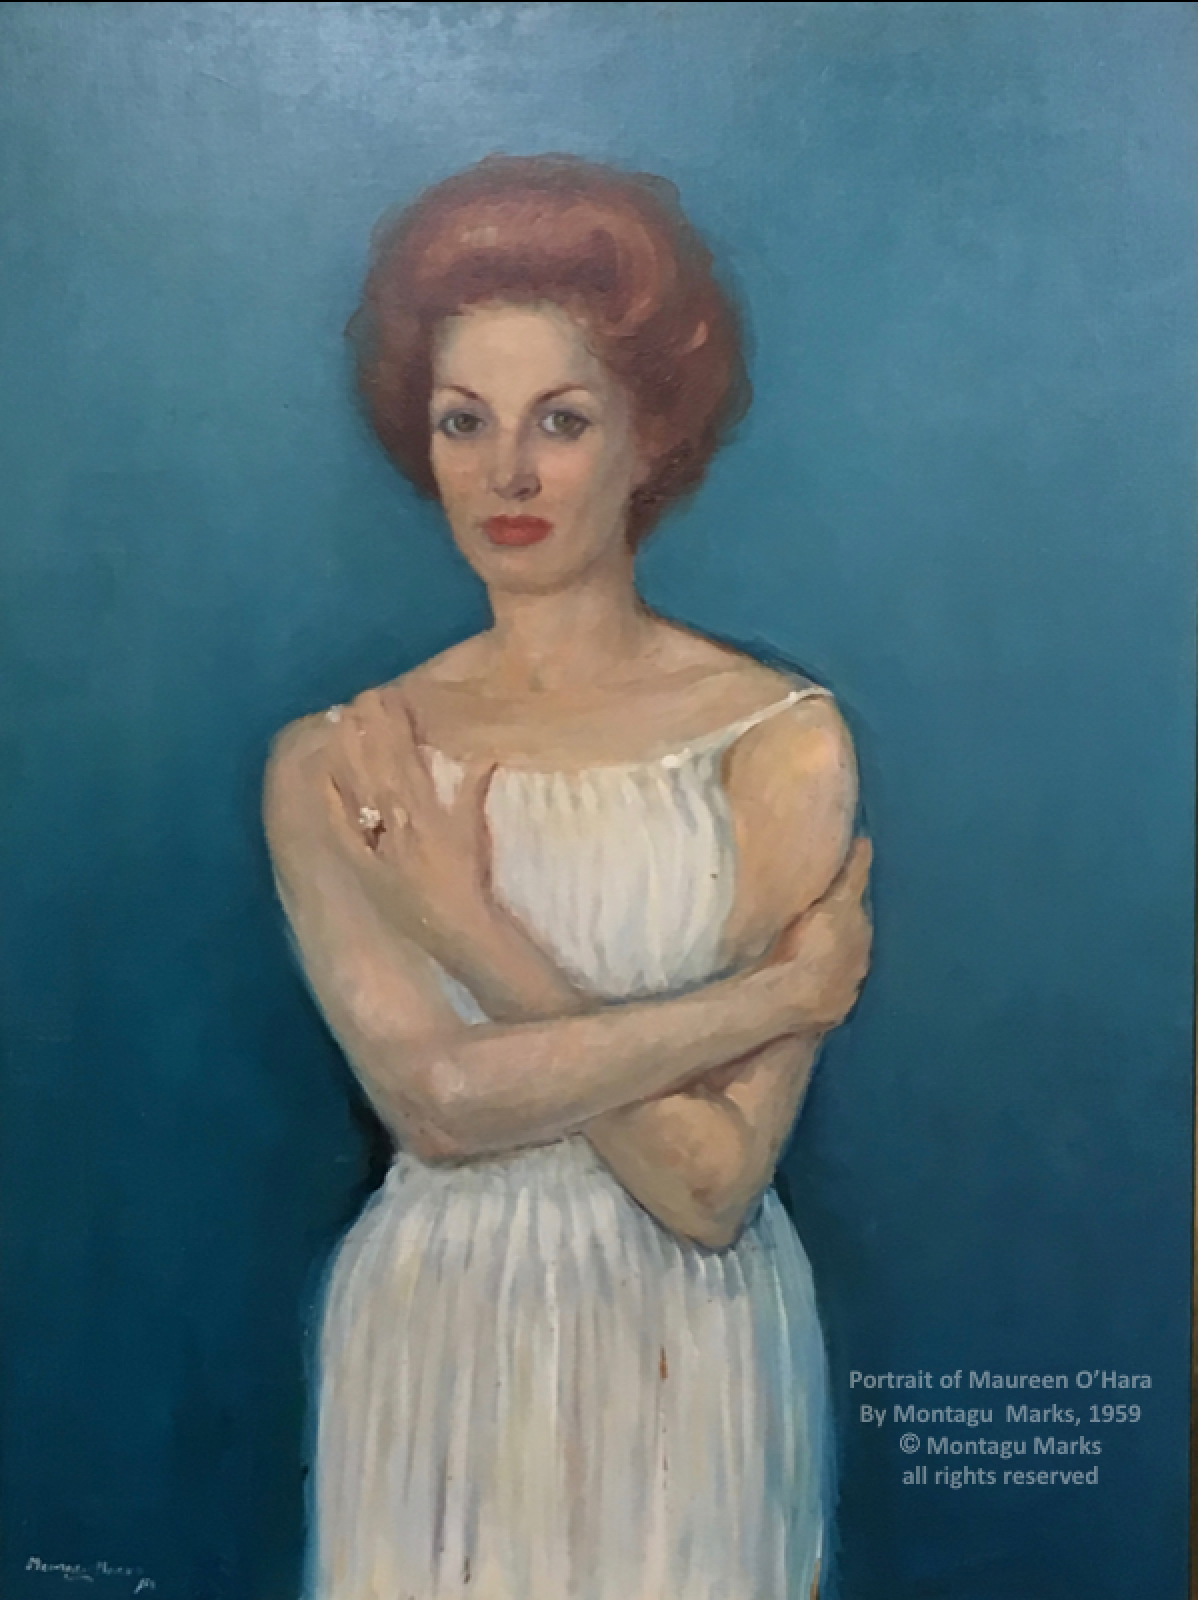 Portrait of Maureen O'Hara by Montagu Marks, 1959. Copyright Montagu Marks Estate all Rights Reserved. Private Collection.